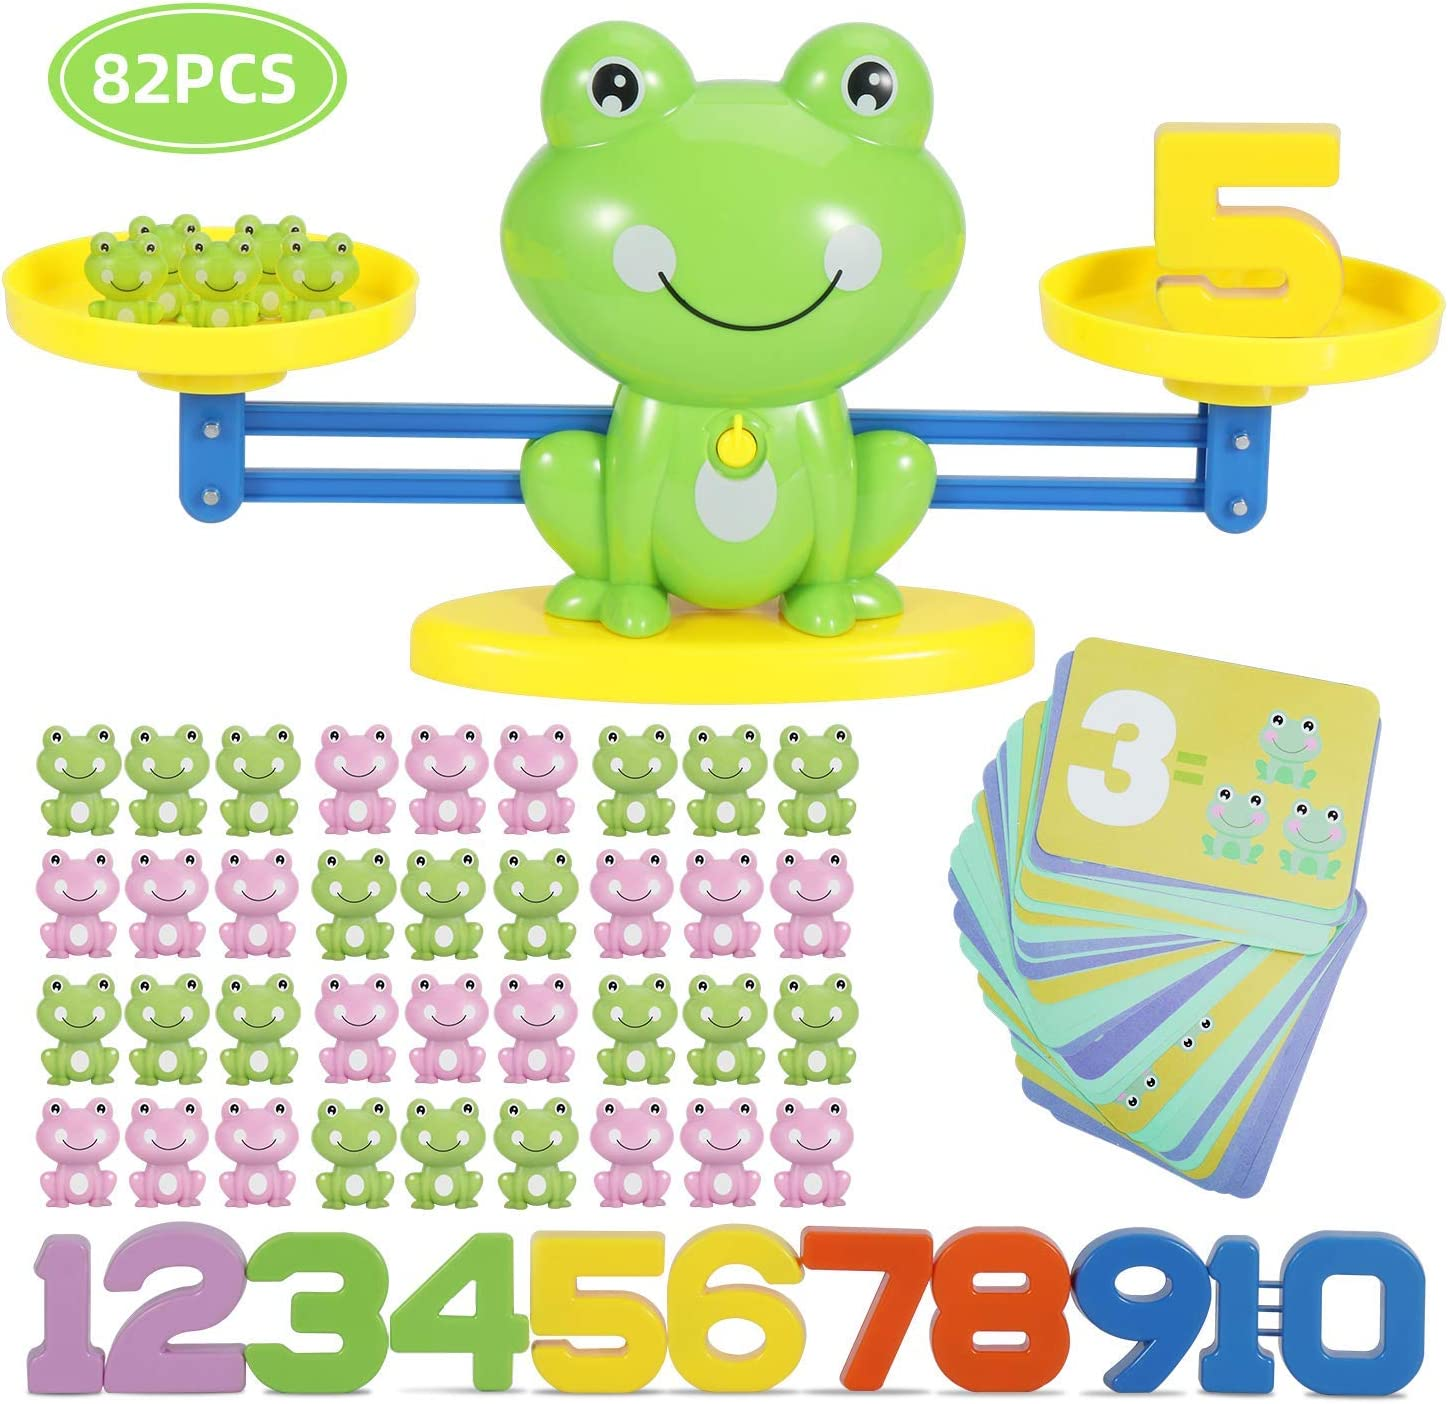 DmbsmOB Counting Toys-Frog Balance Montessori Educational STEM Math Counting Games & Balance Measuring Fun Number Learning Material for Girls & Boys Kids Ages 3+